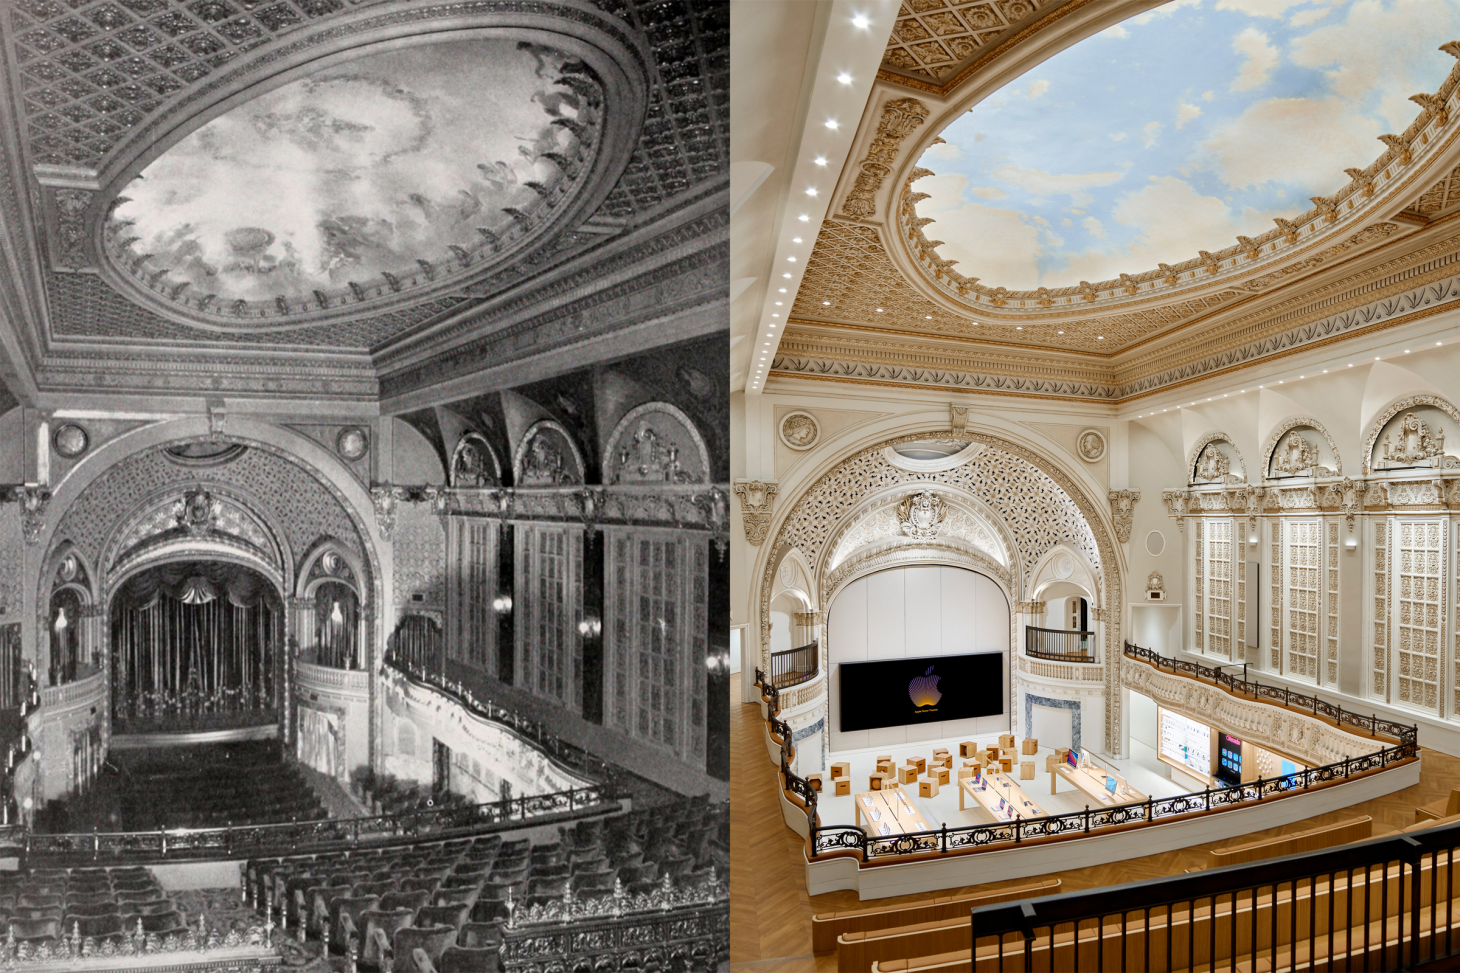 Archival photograph of Tower Theater in LA compared to a modern day Apple one